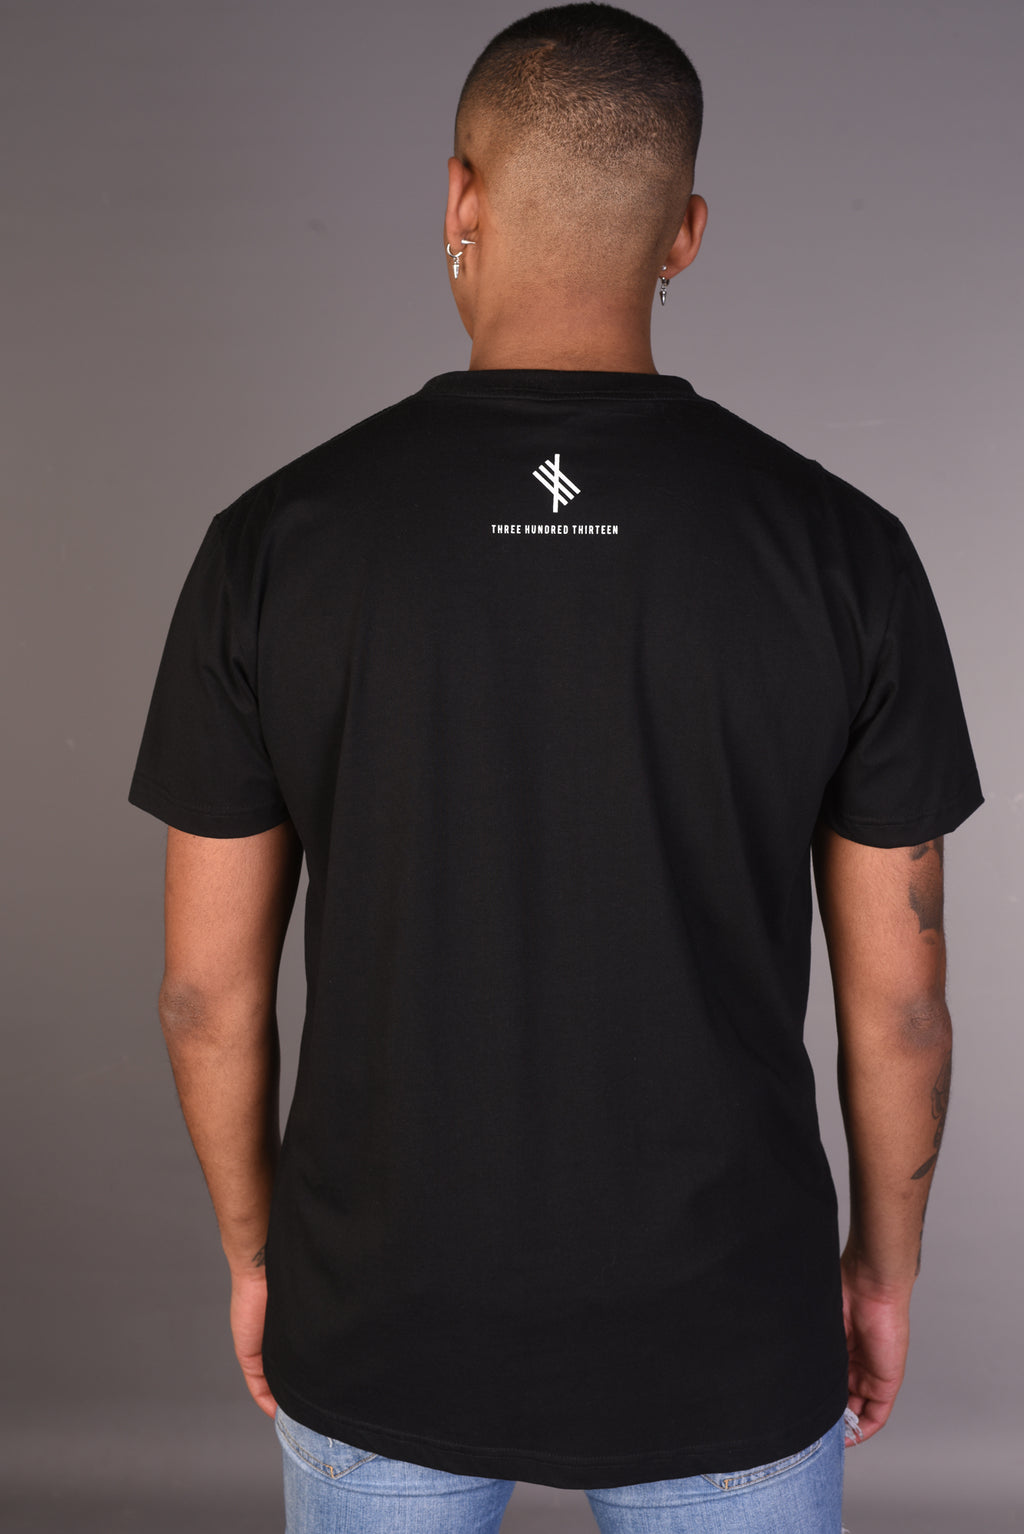 THREE HUNDRED THIRTEEN - Black Tee